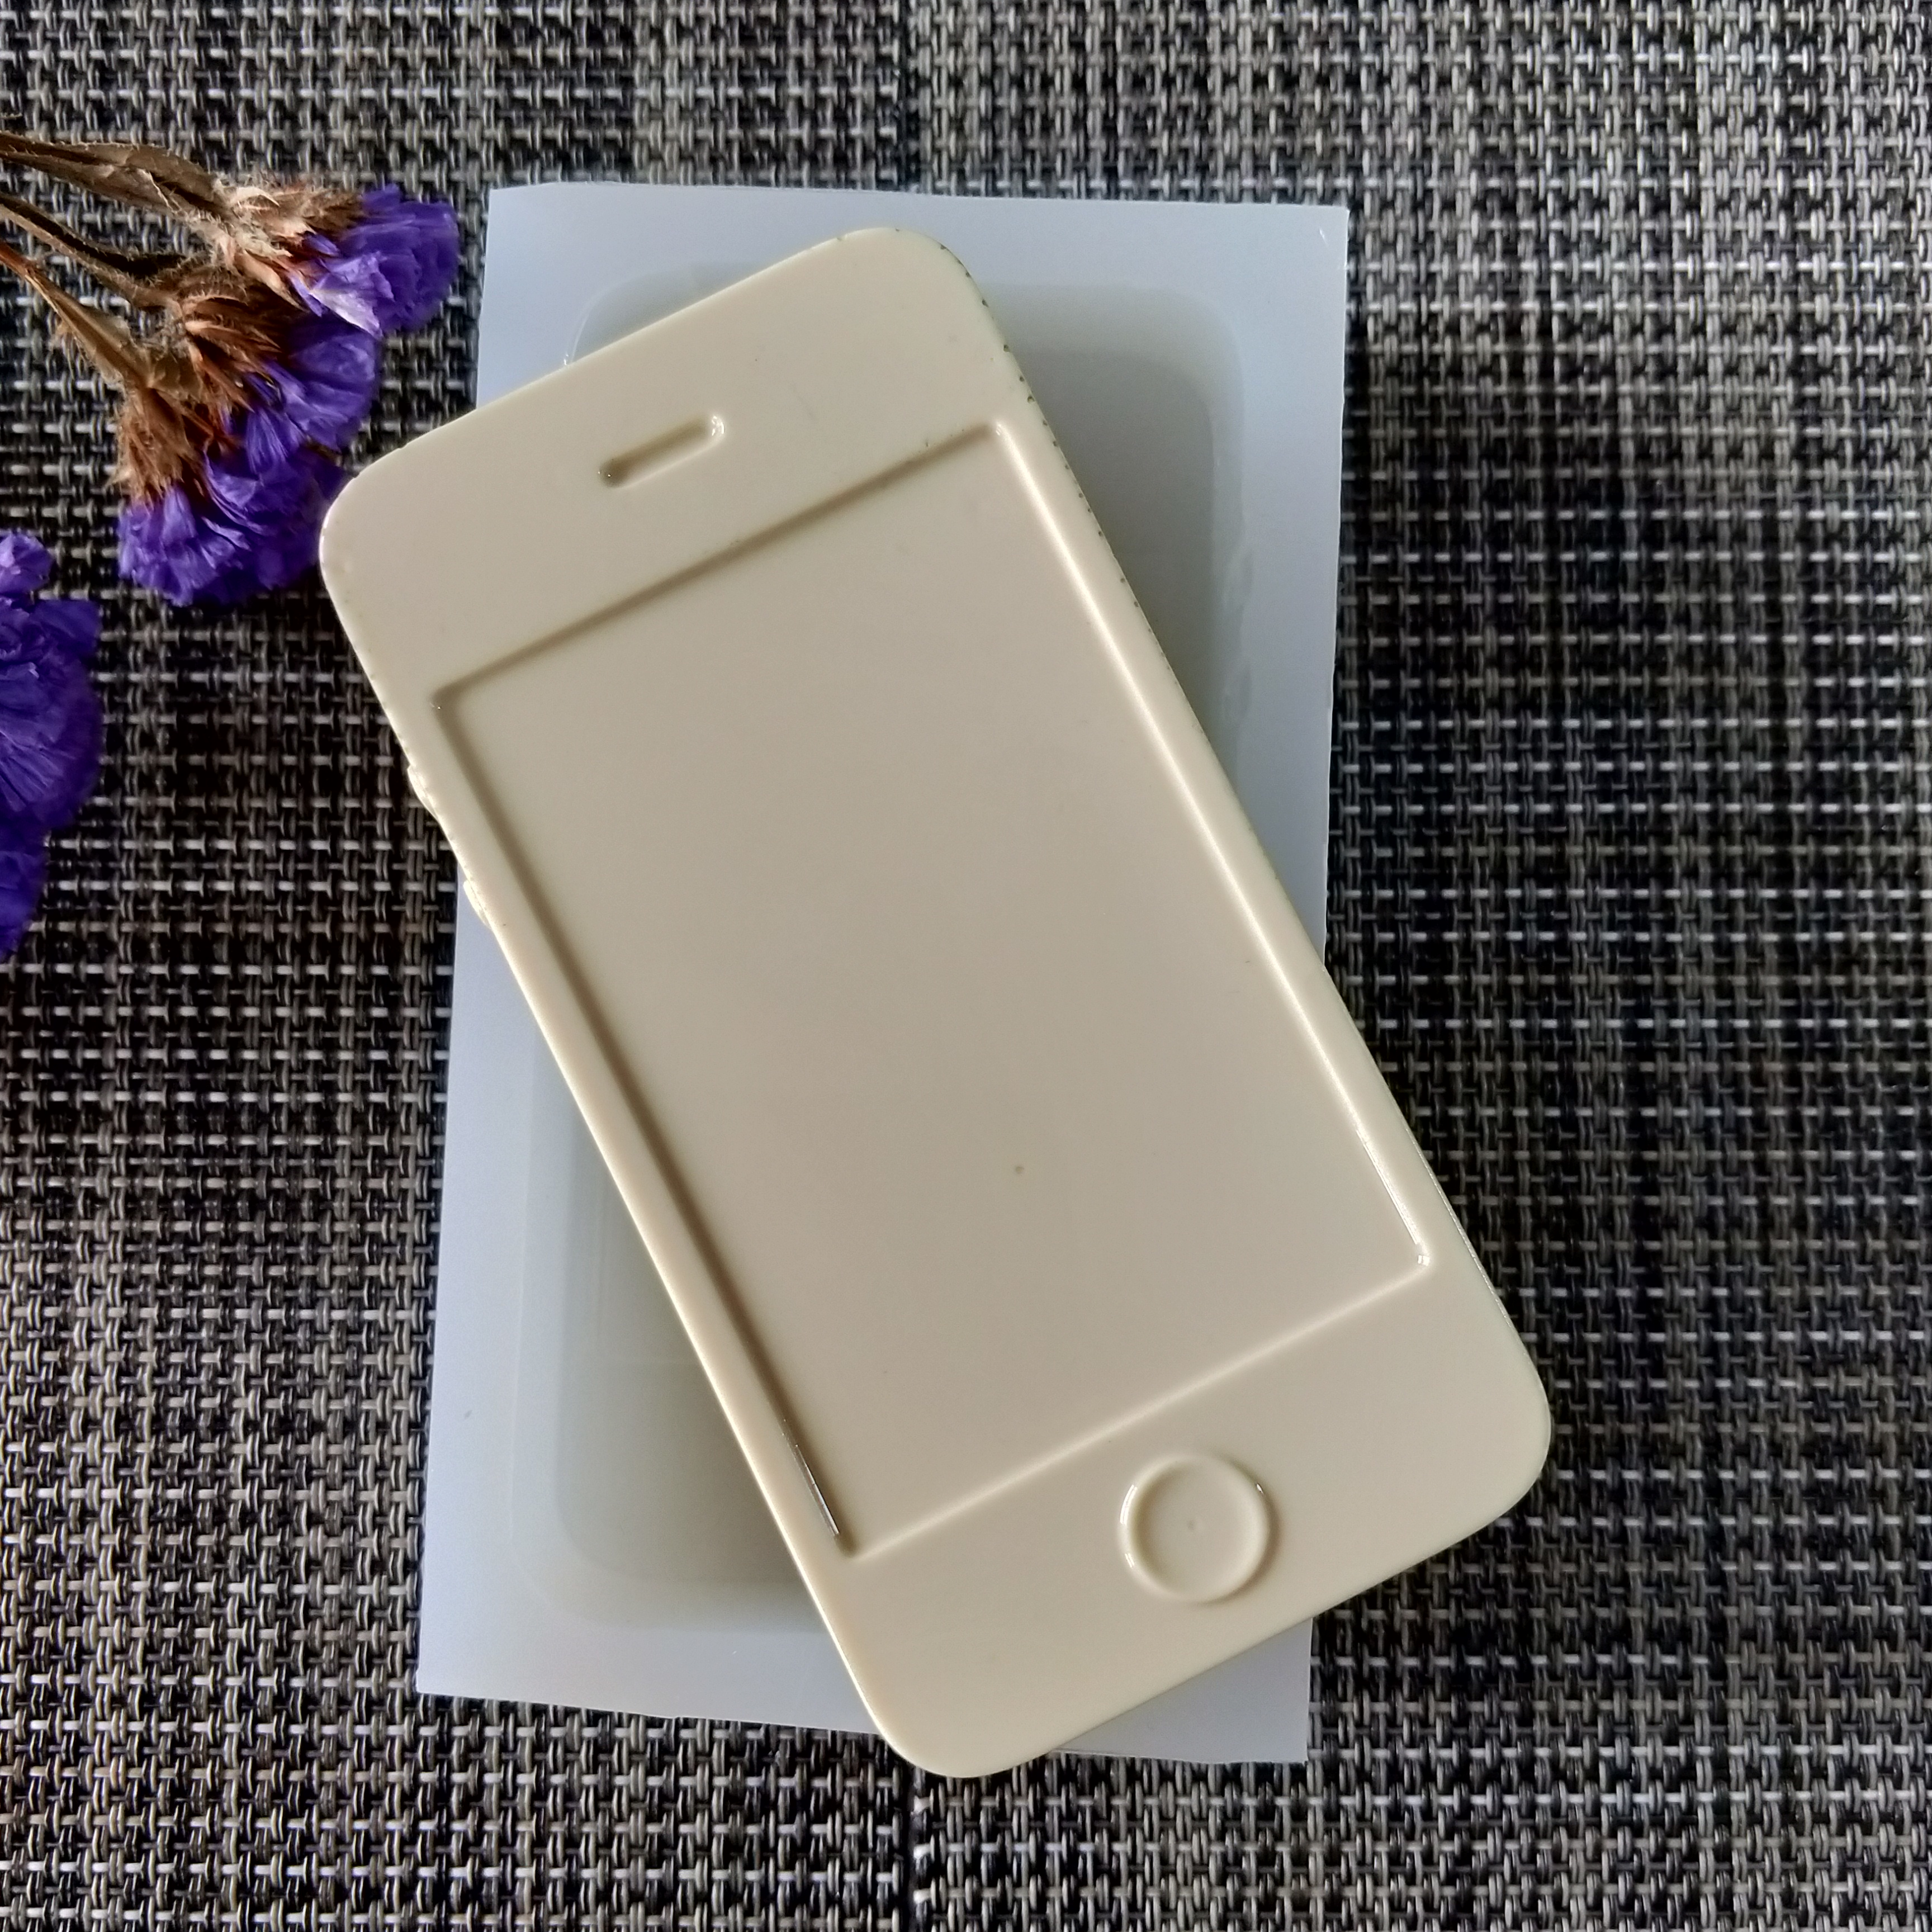 QT0164 PRZY Mobile phone model soap mould silicone mold handmade soap making molds candle silicone mold resin clay moulds